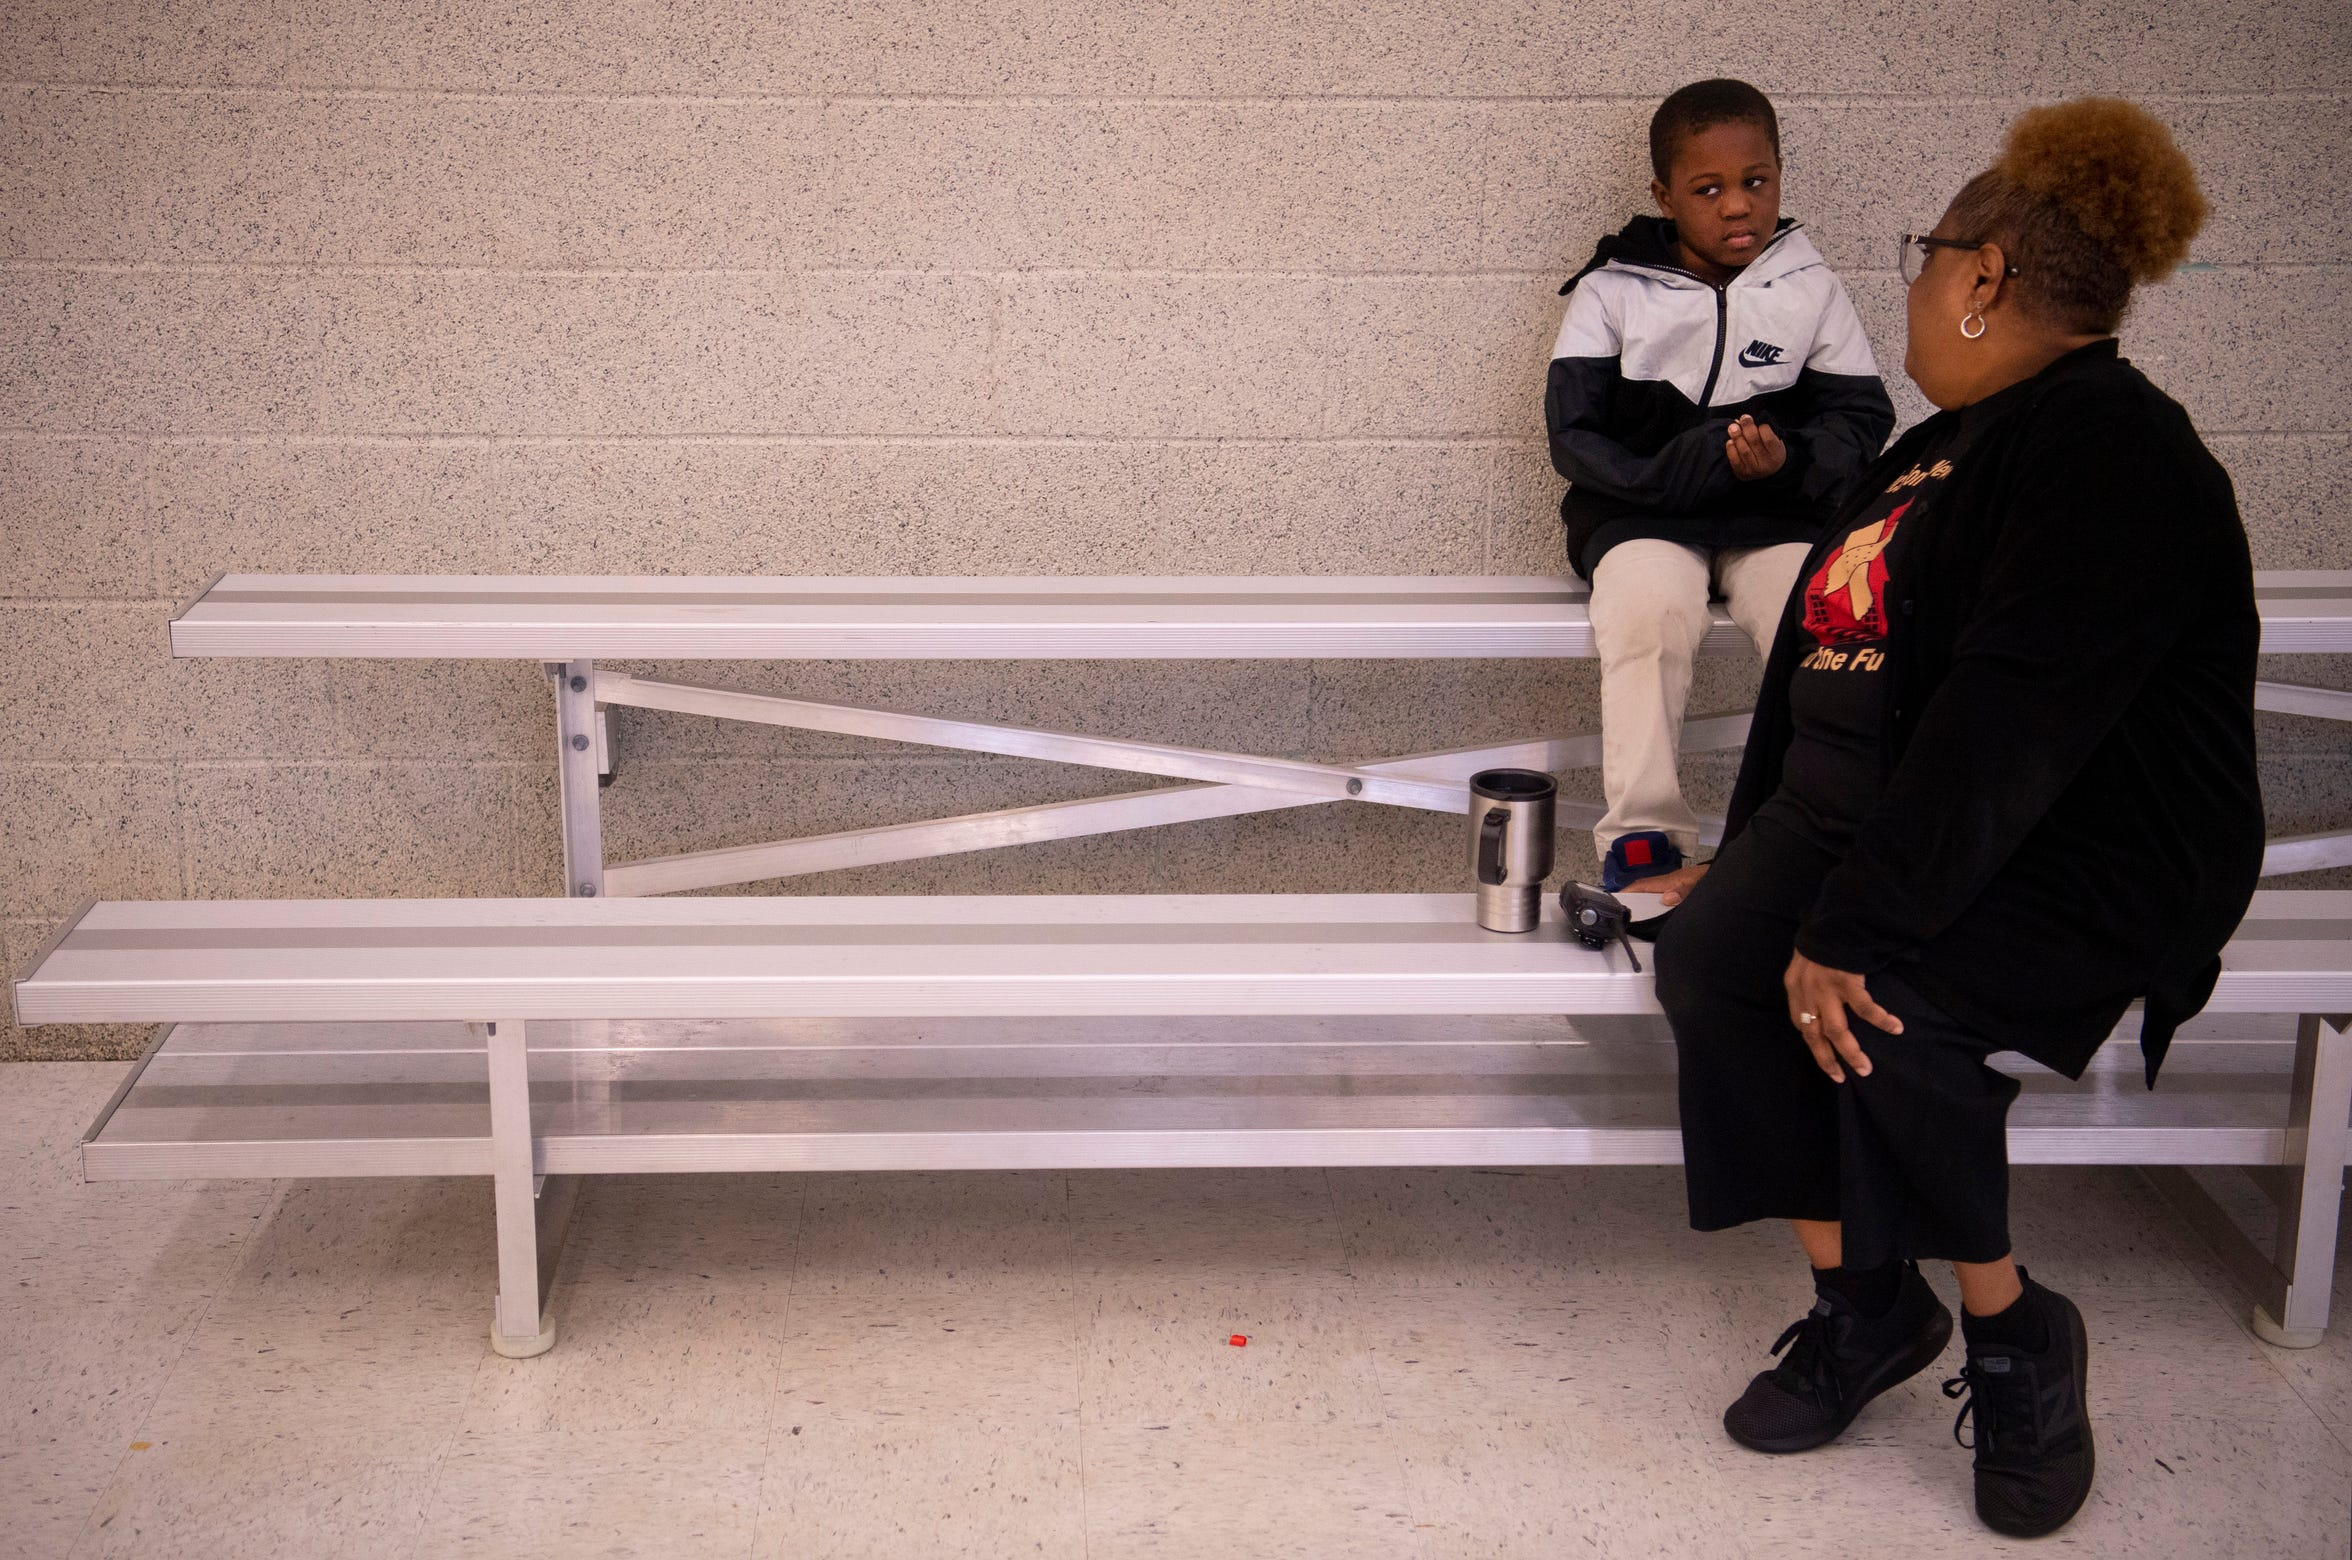 Pam Decker has a time-out talk with Antwan Howard in the school's gym during Joshua Academy's field day Friday, May 10, 2019. The 40-year education veteran wears a variety of hats in her role as CEO of the school.